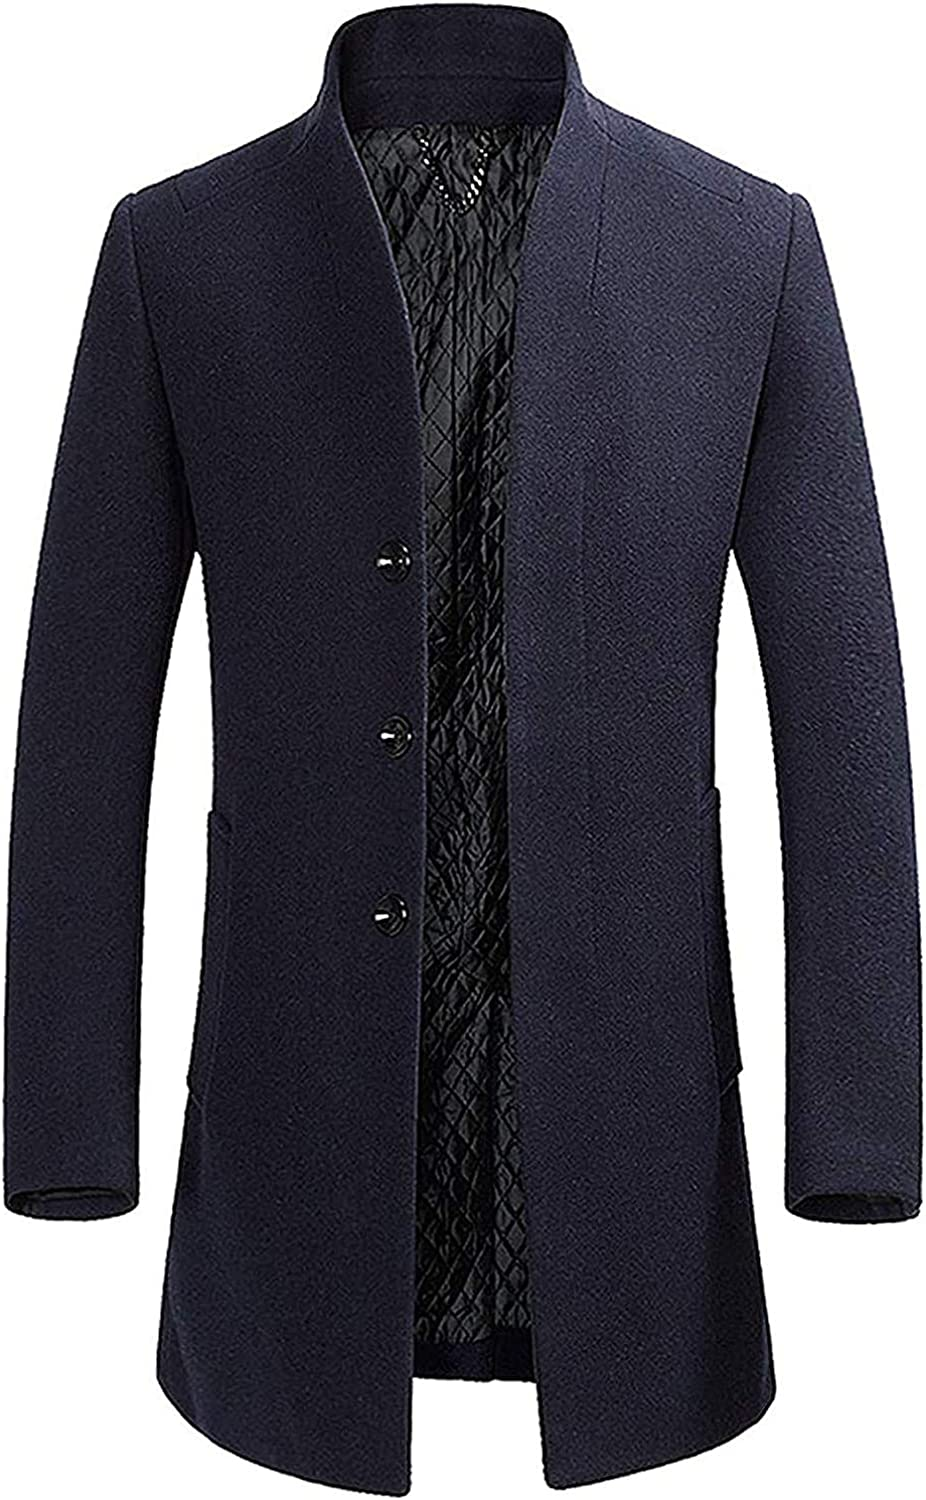 Hoolep Men's Lapel/French Front Thicken Button Front Mid-Long Wool Blend Walker Coat